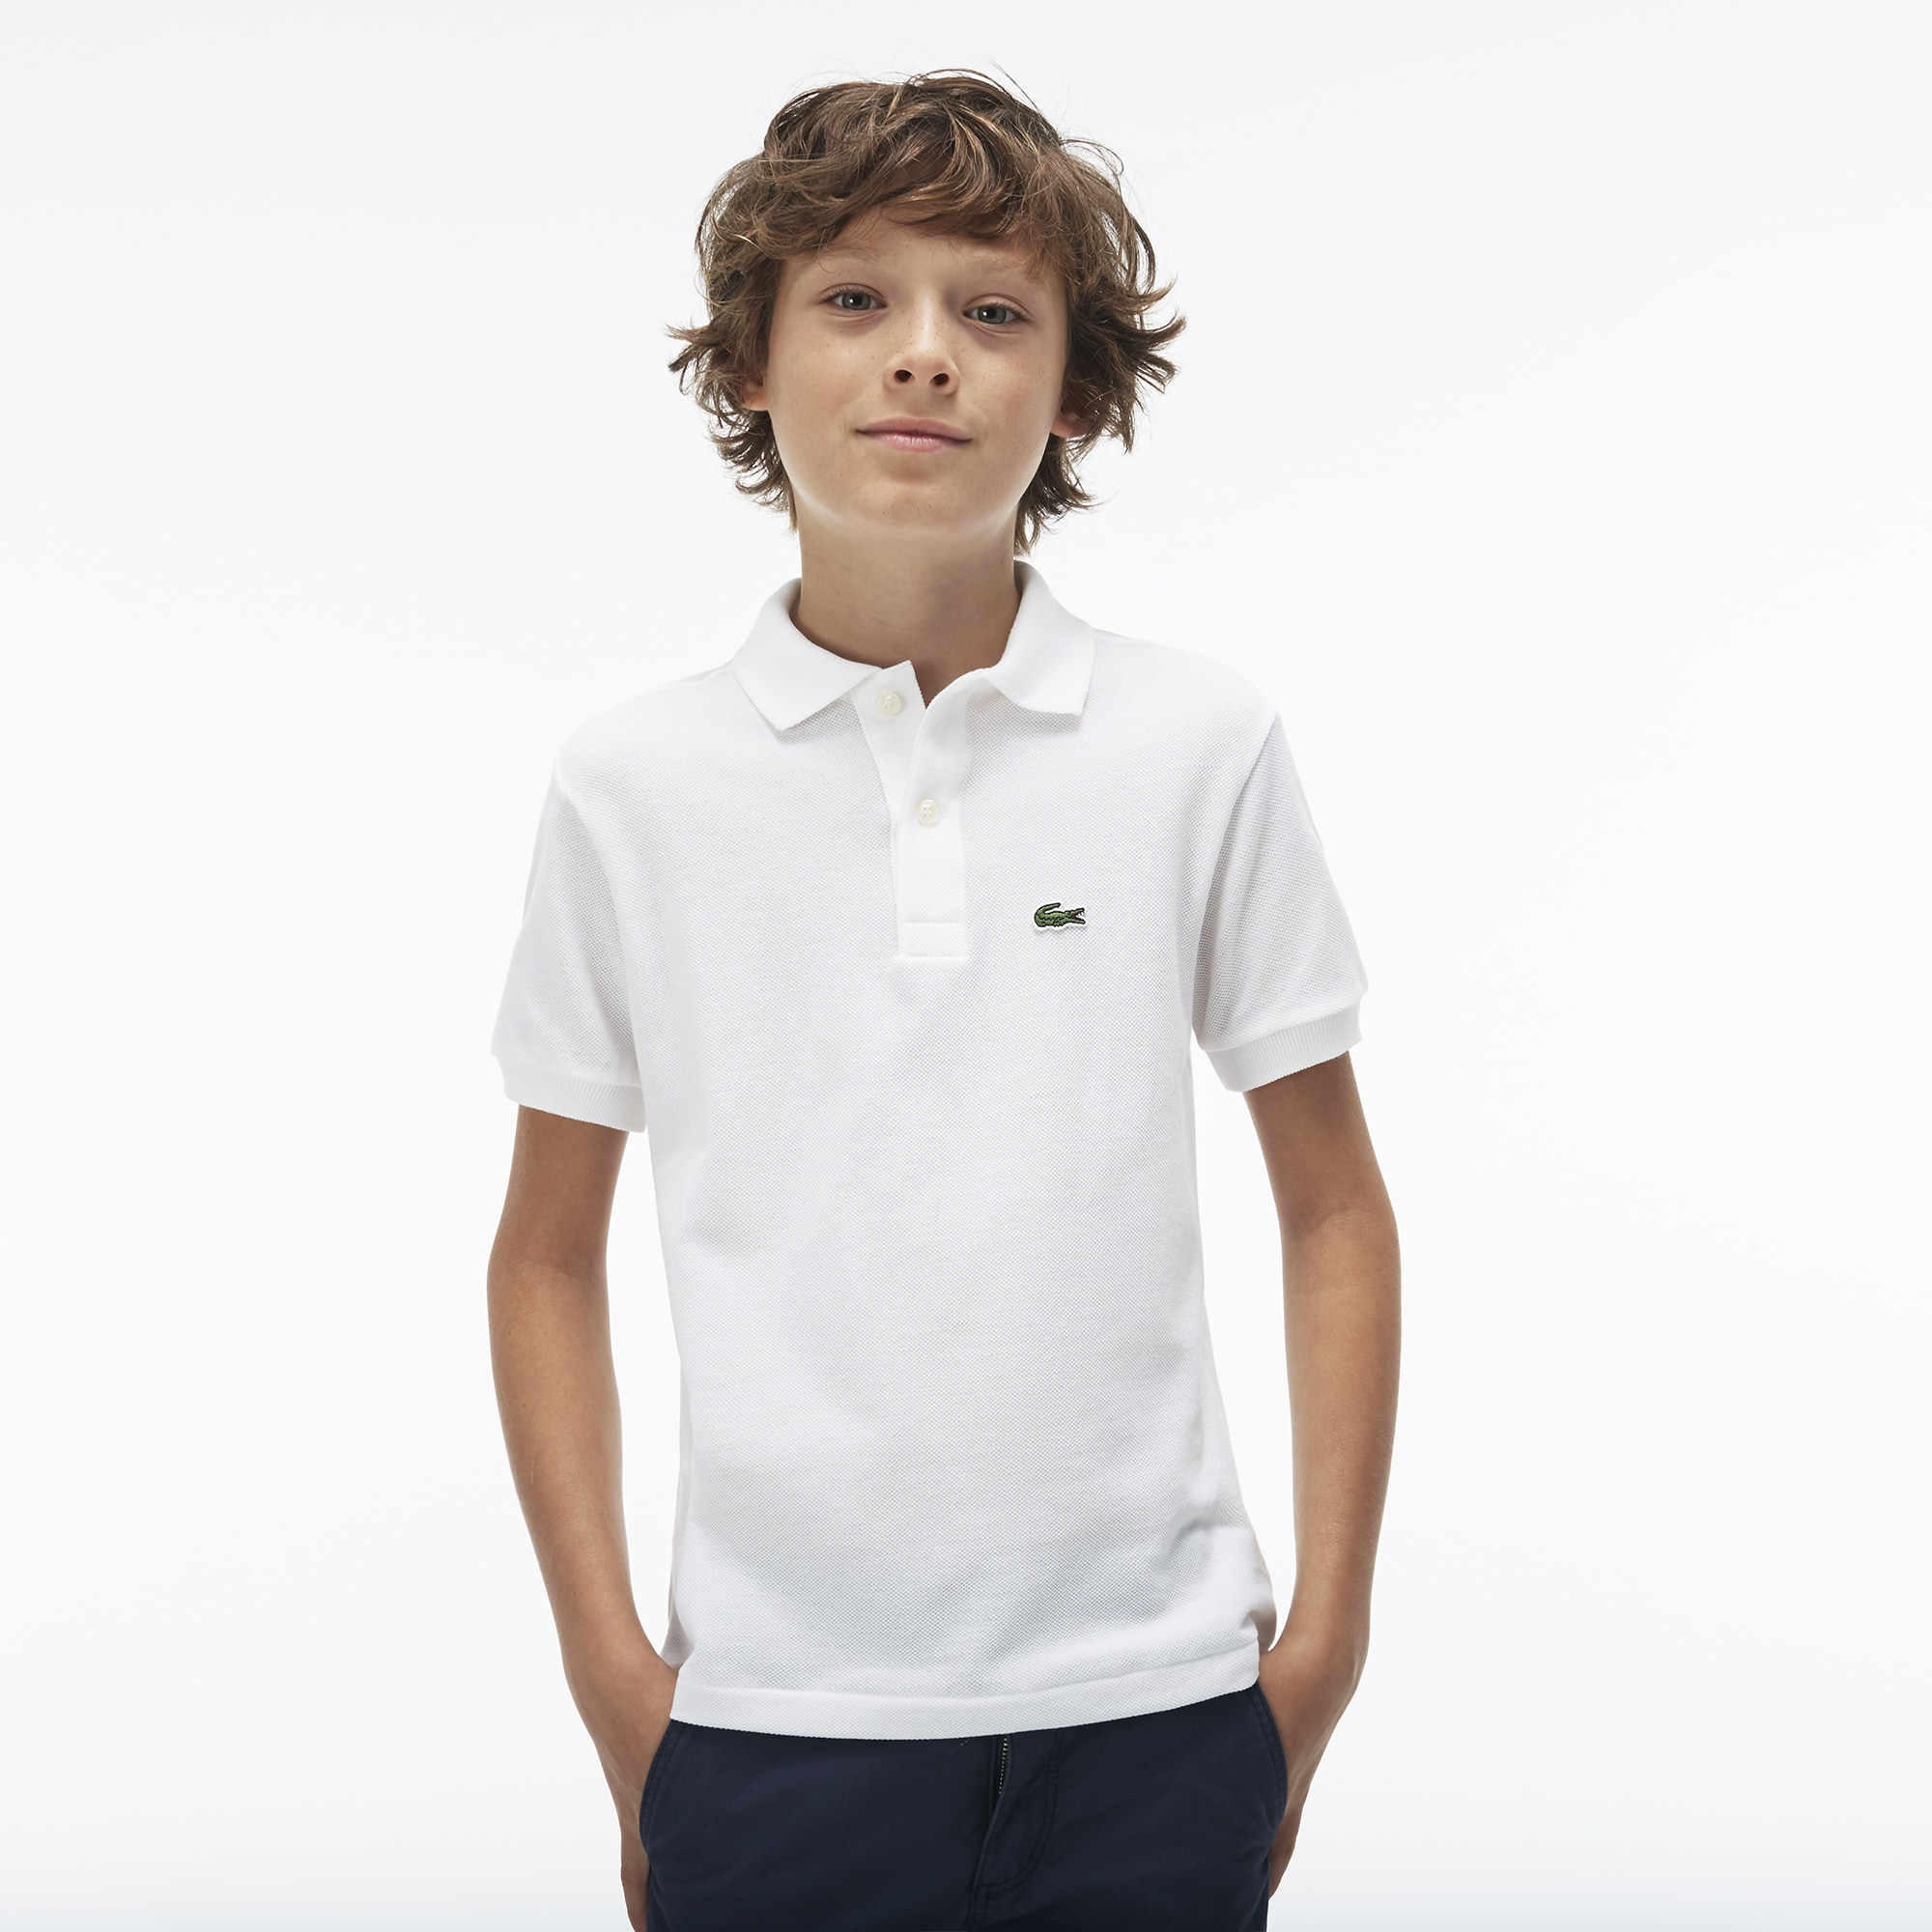 db96846ad Boy's Polo Shirts | The Lacoste Polo For Kids | LACOSTE